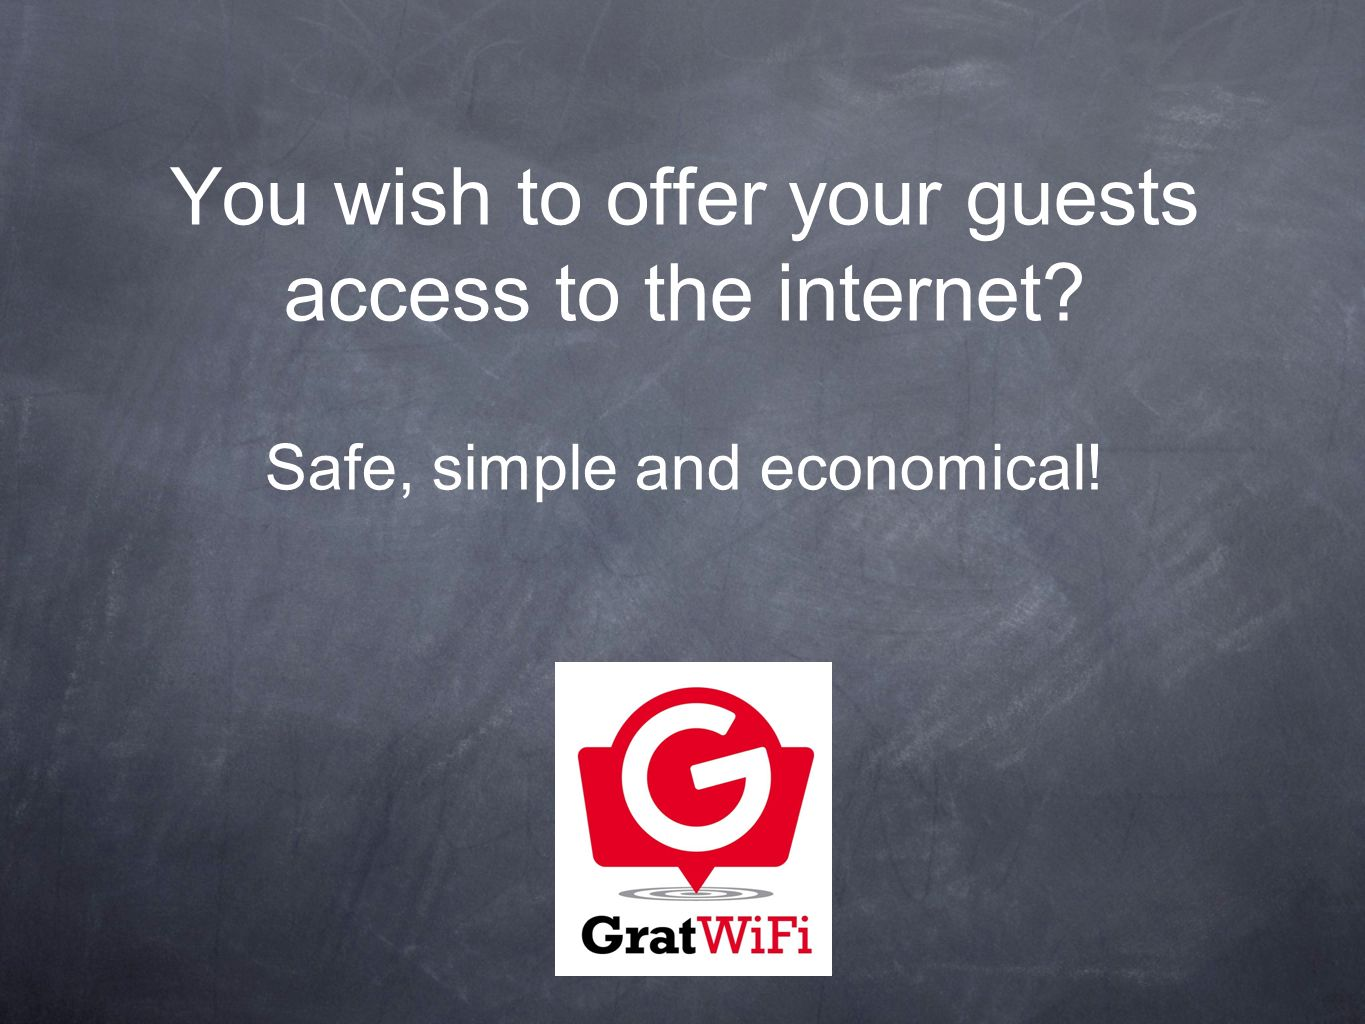 You wish to offer your guests access to the internet